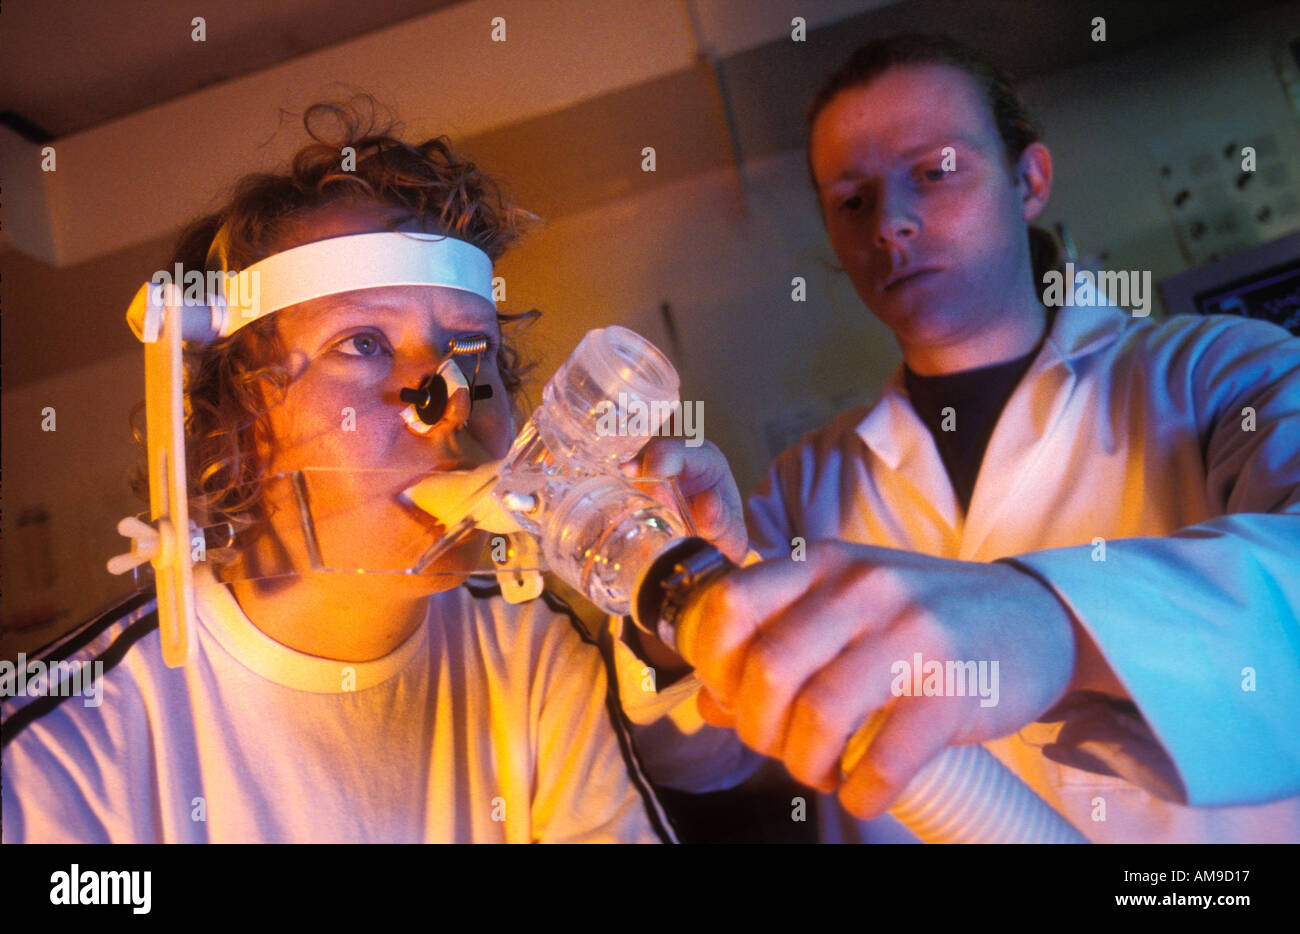 University students testing lung capacity. - Stock Image